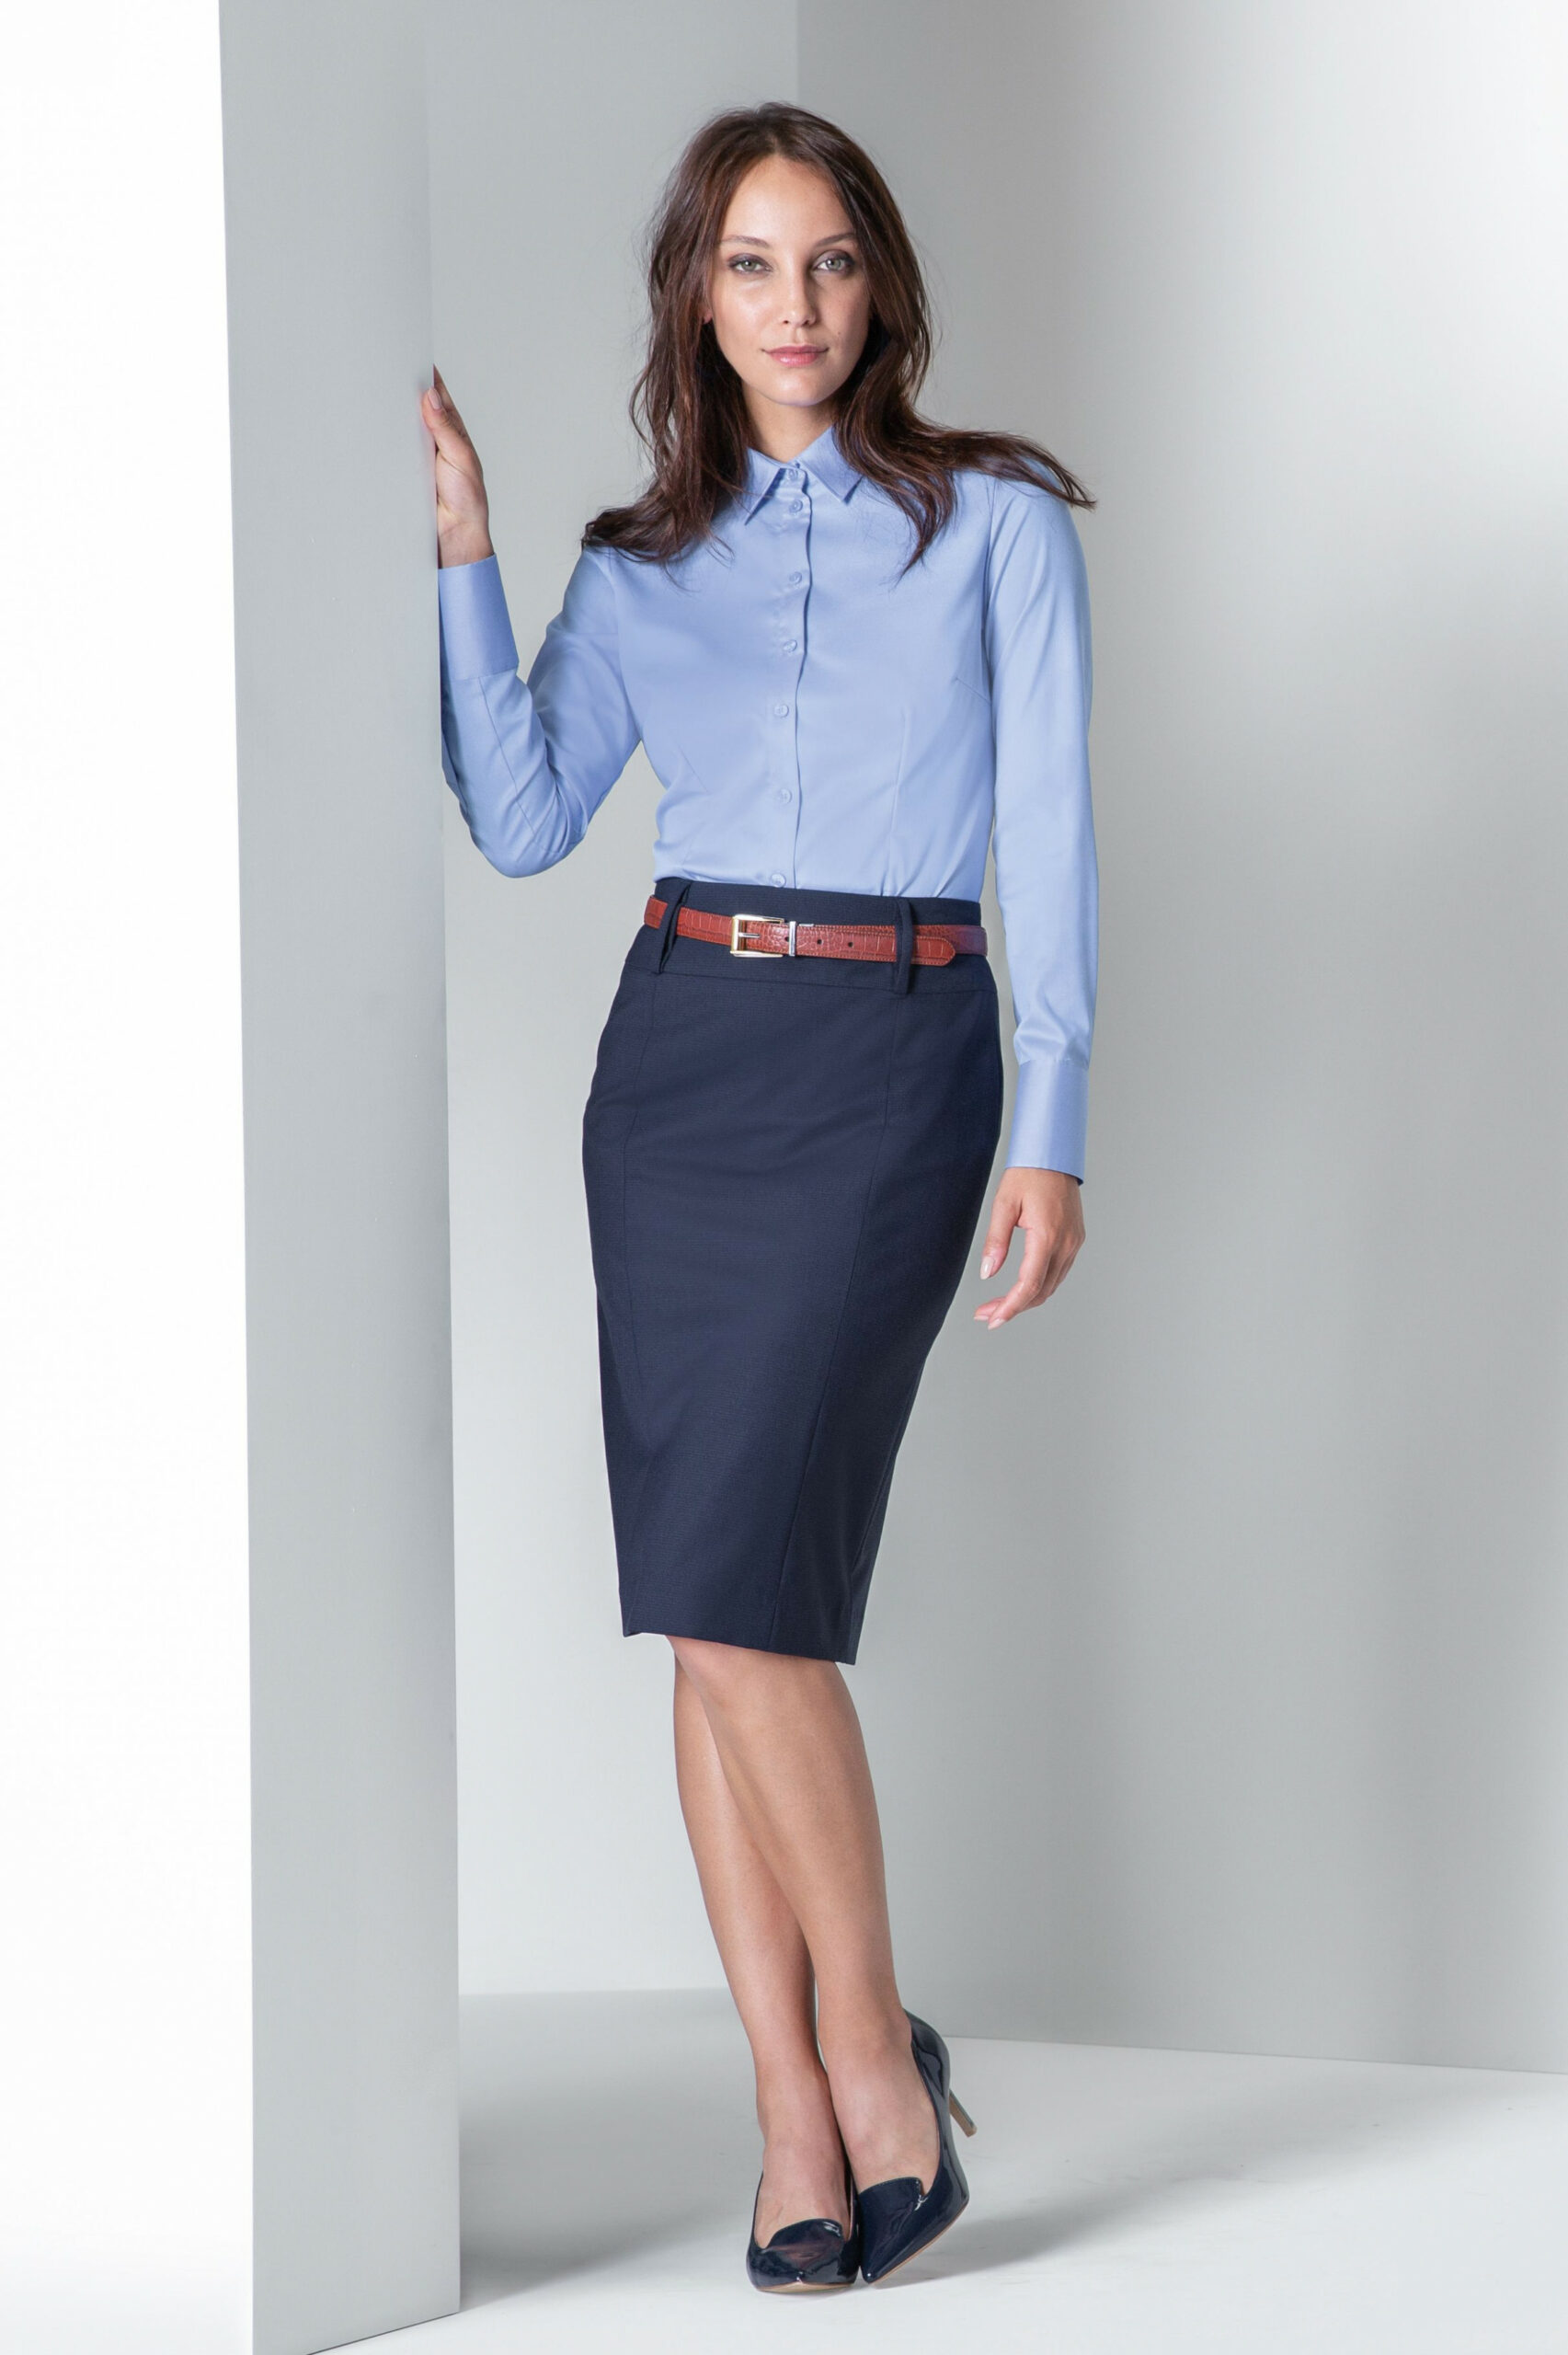 collection 9/9 women business look blouse, skirt premium kleidung für frauen